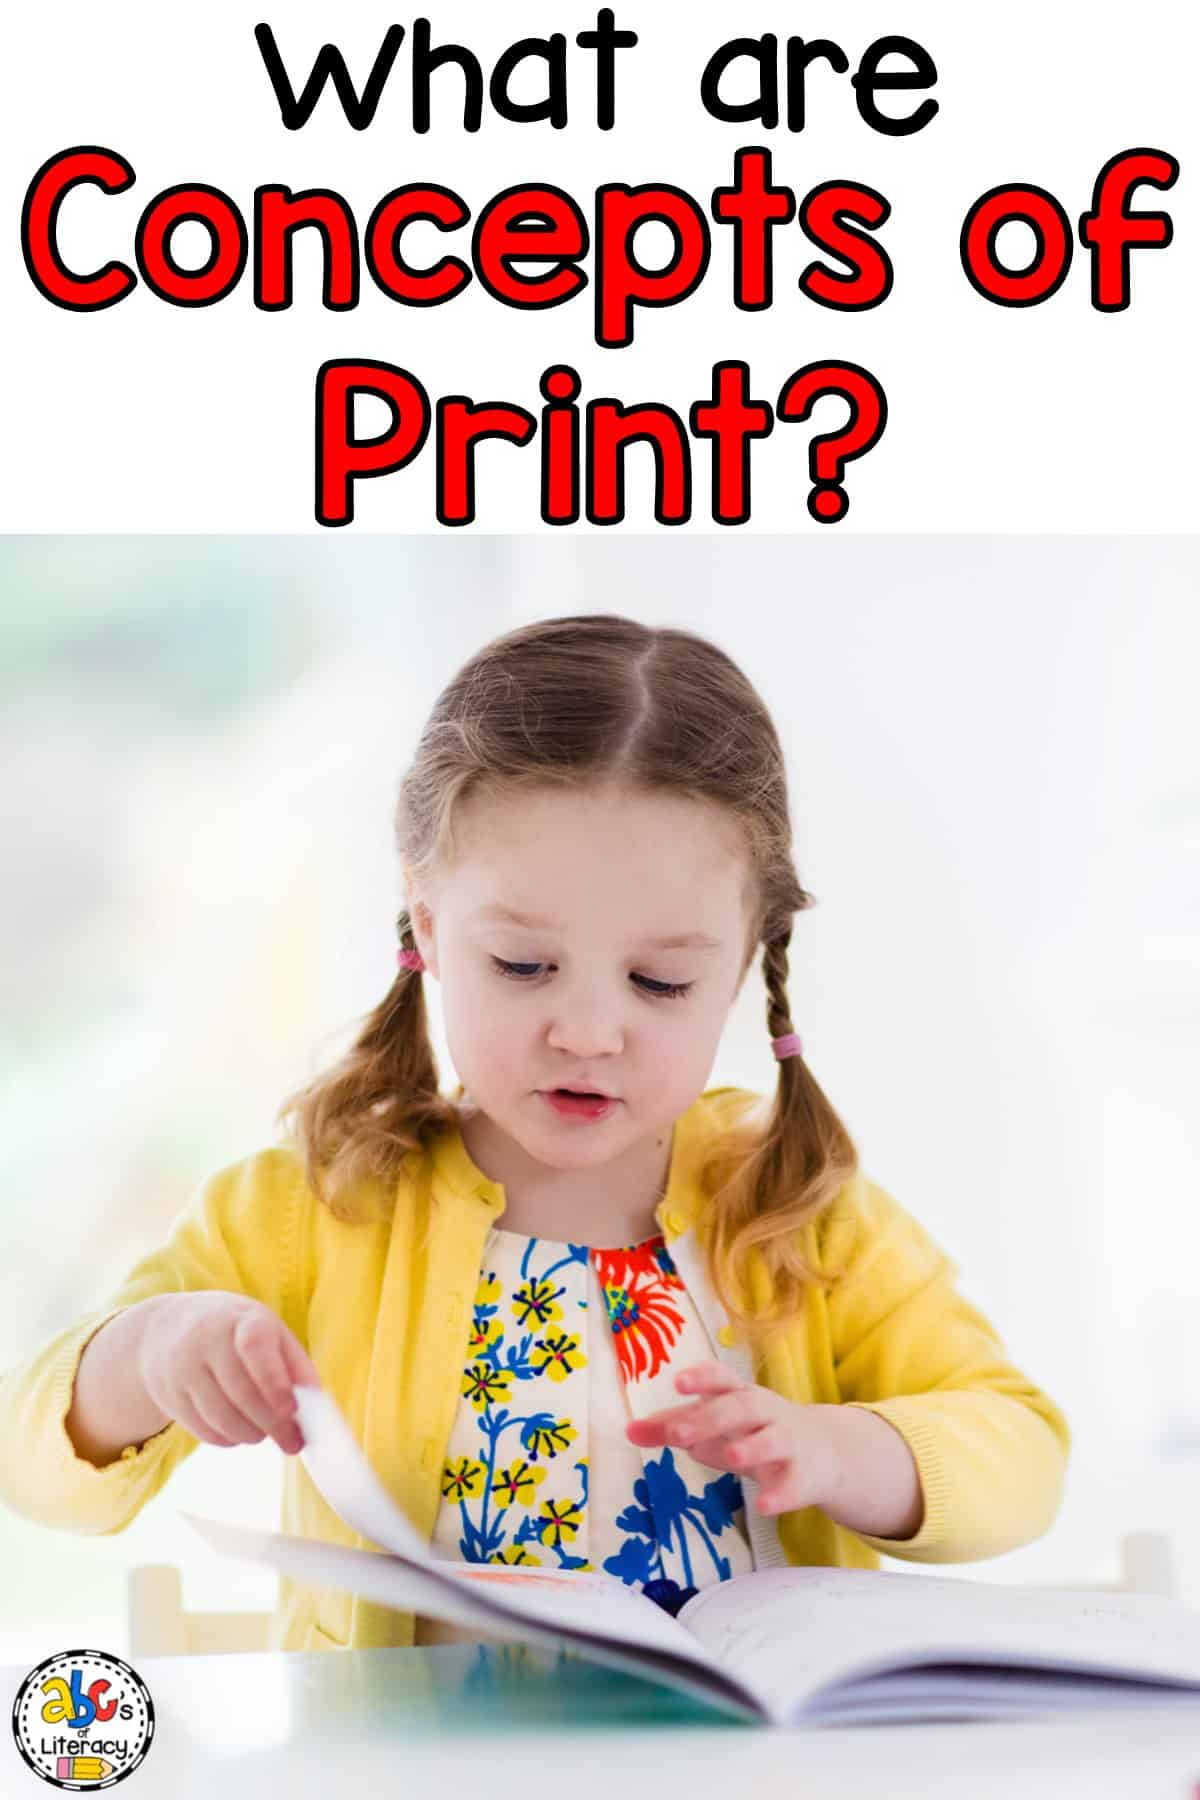 What are Concepts of Print?